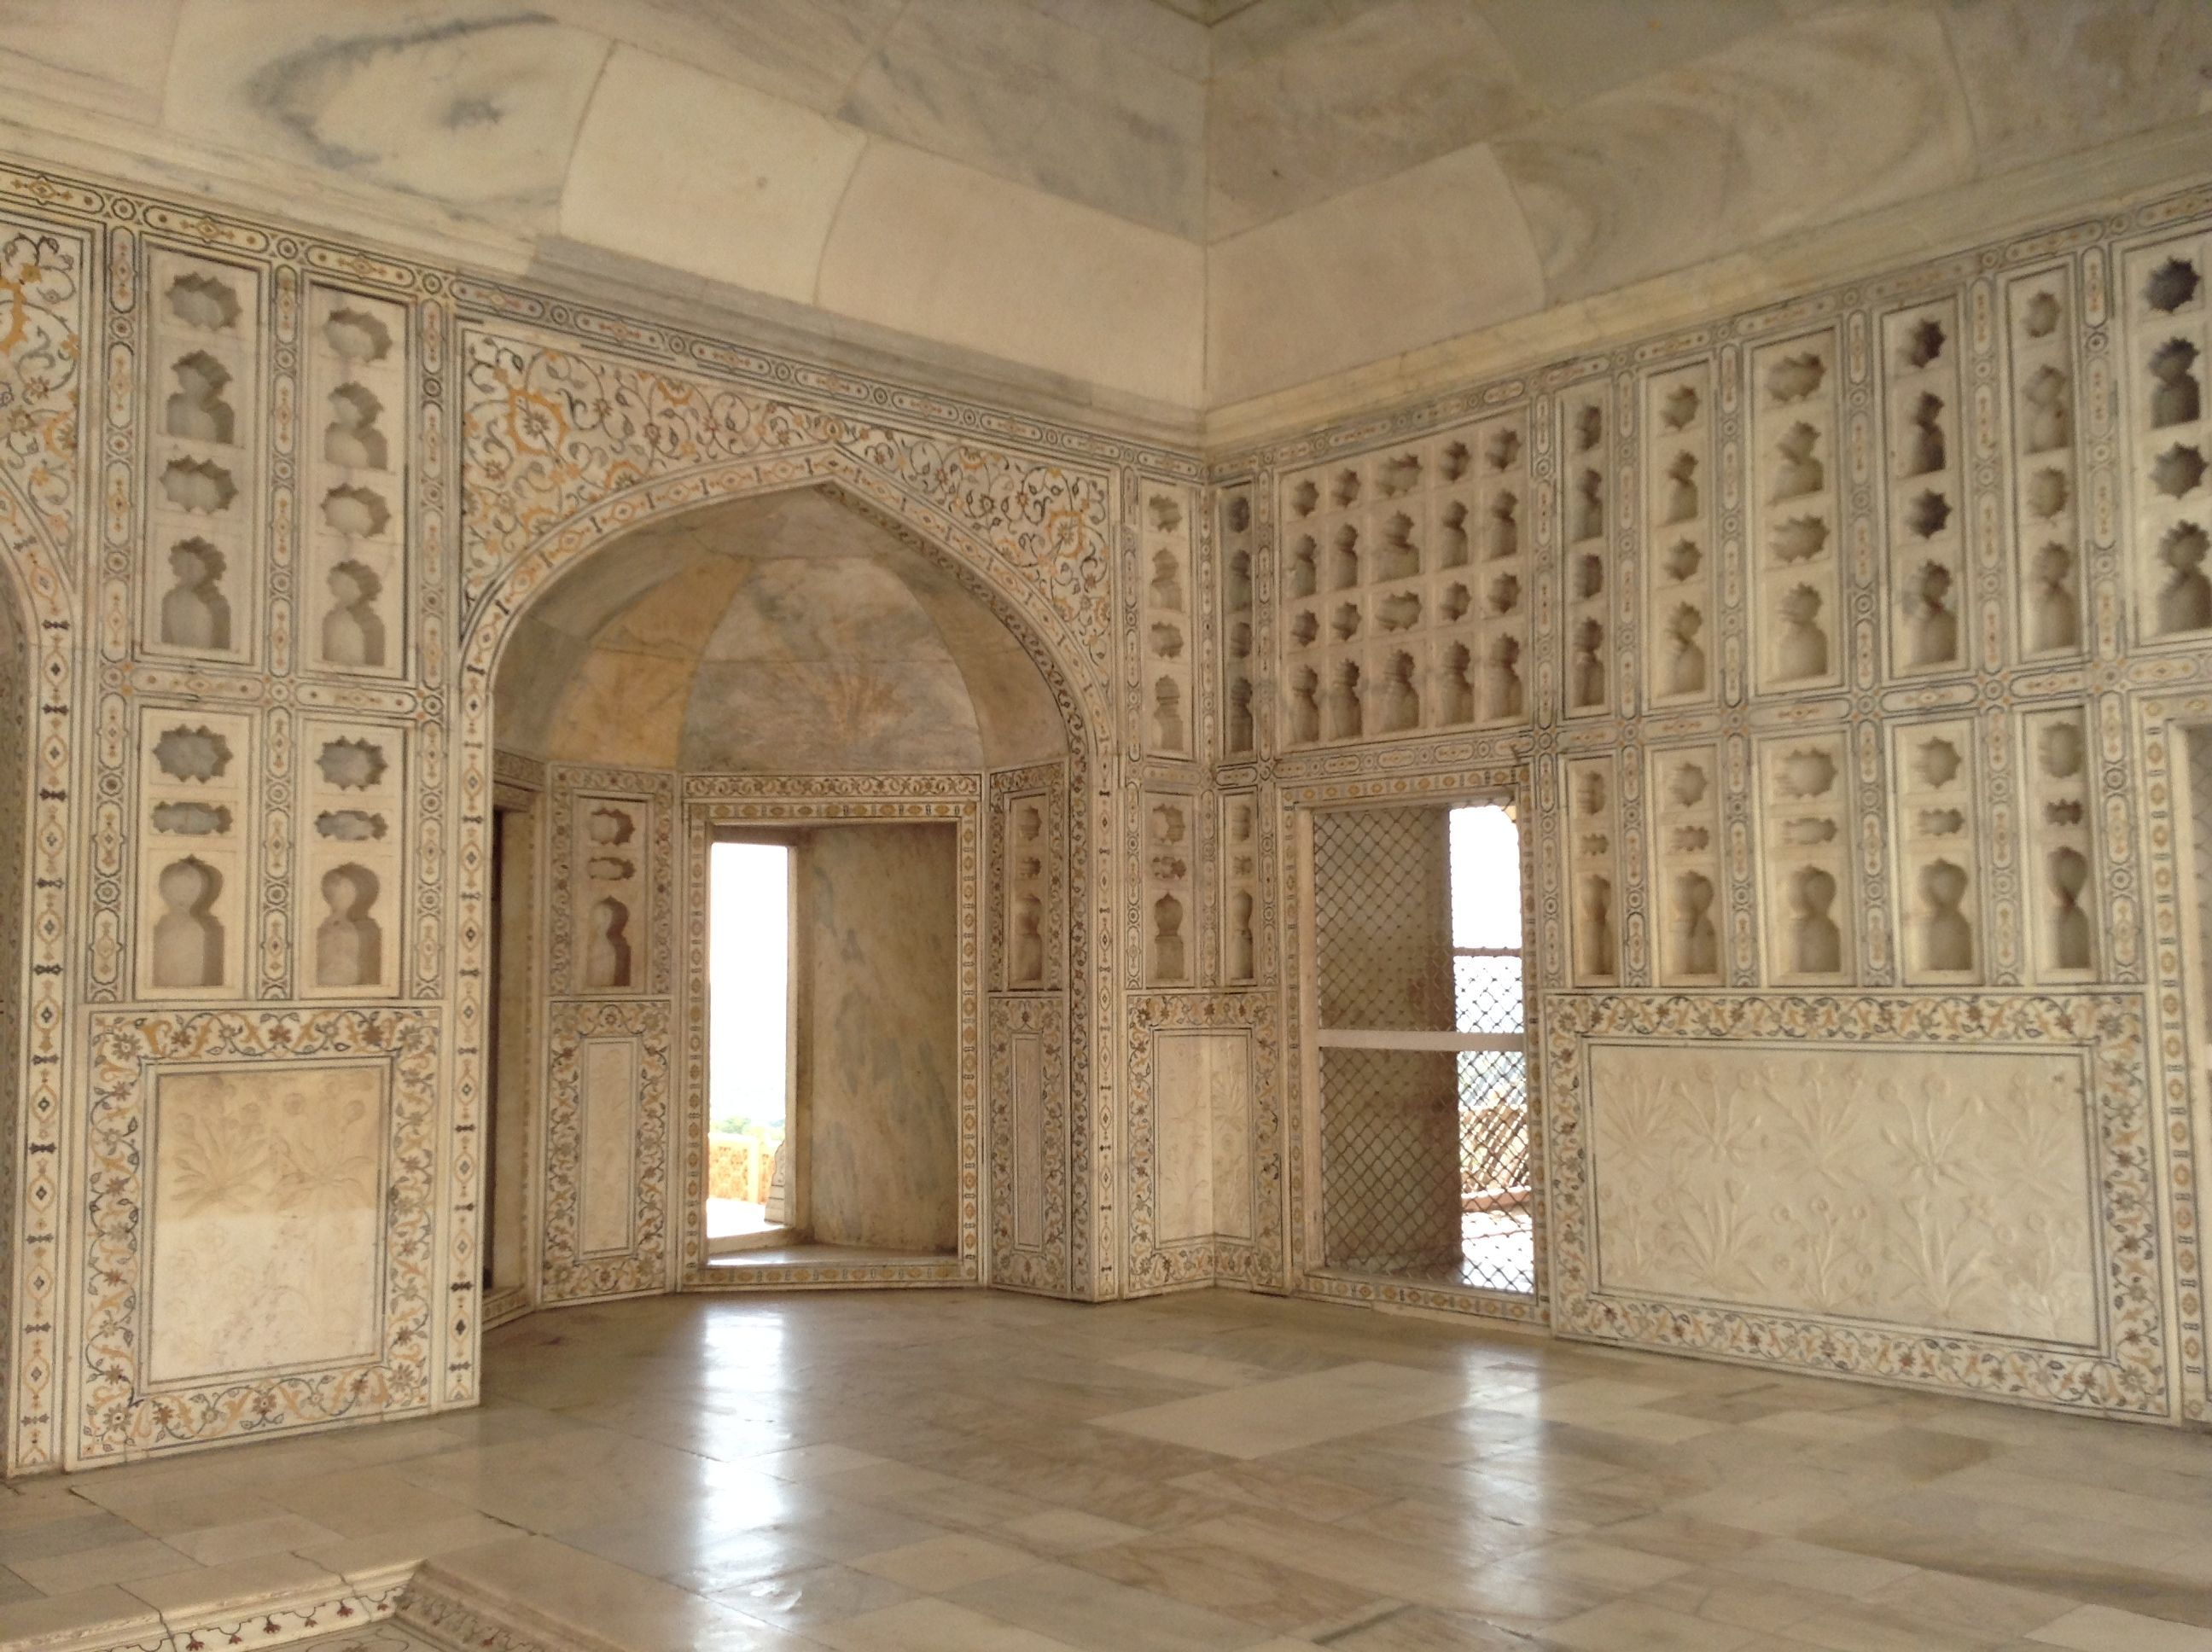 Inside Agra Fort - so ornate, golden triangle india